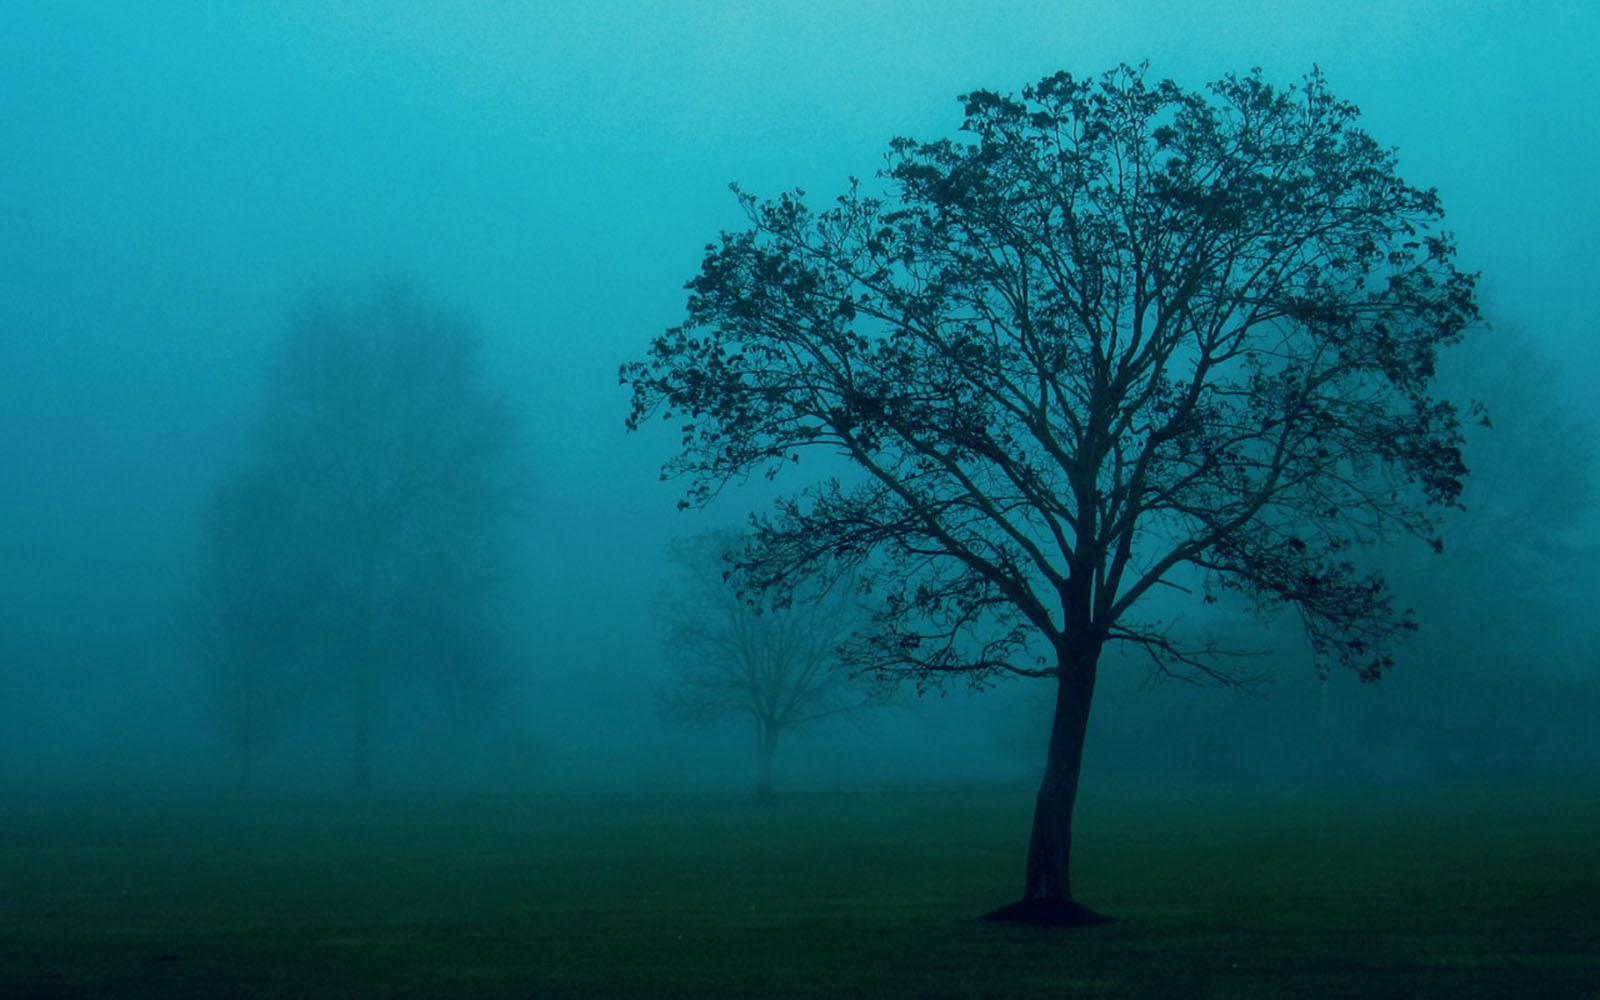 wallpapers trees in the mist